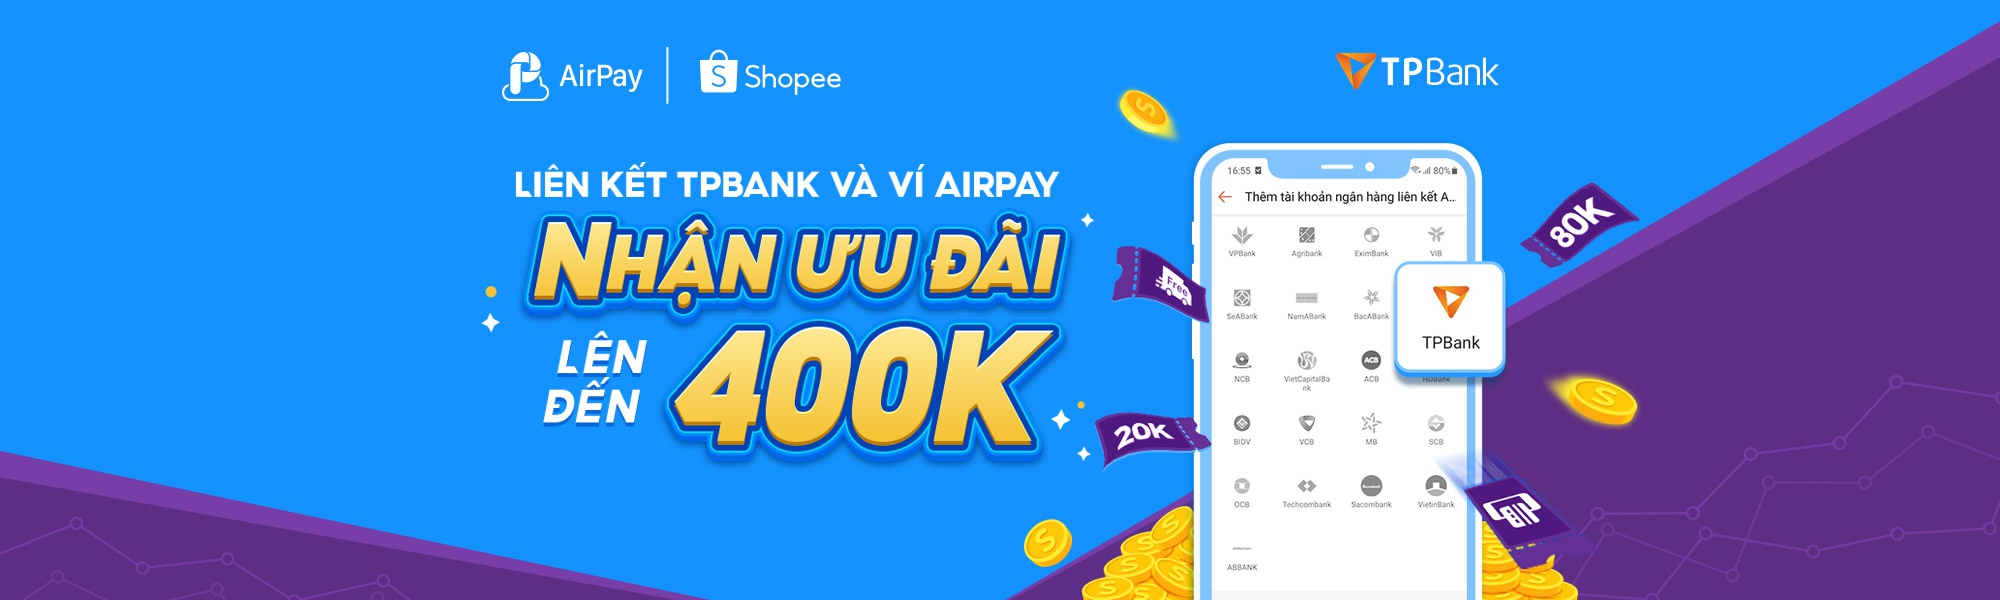 AirPay-TPBank-Promotion